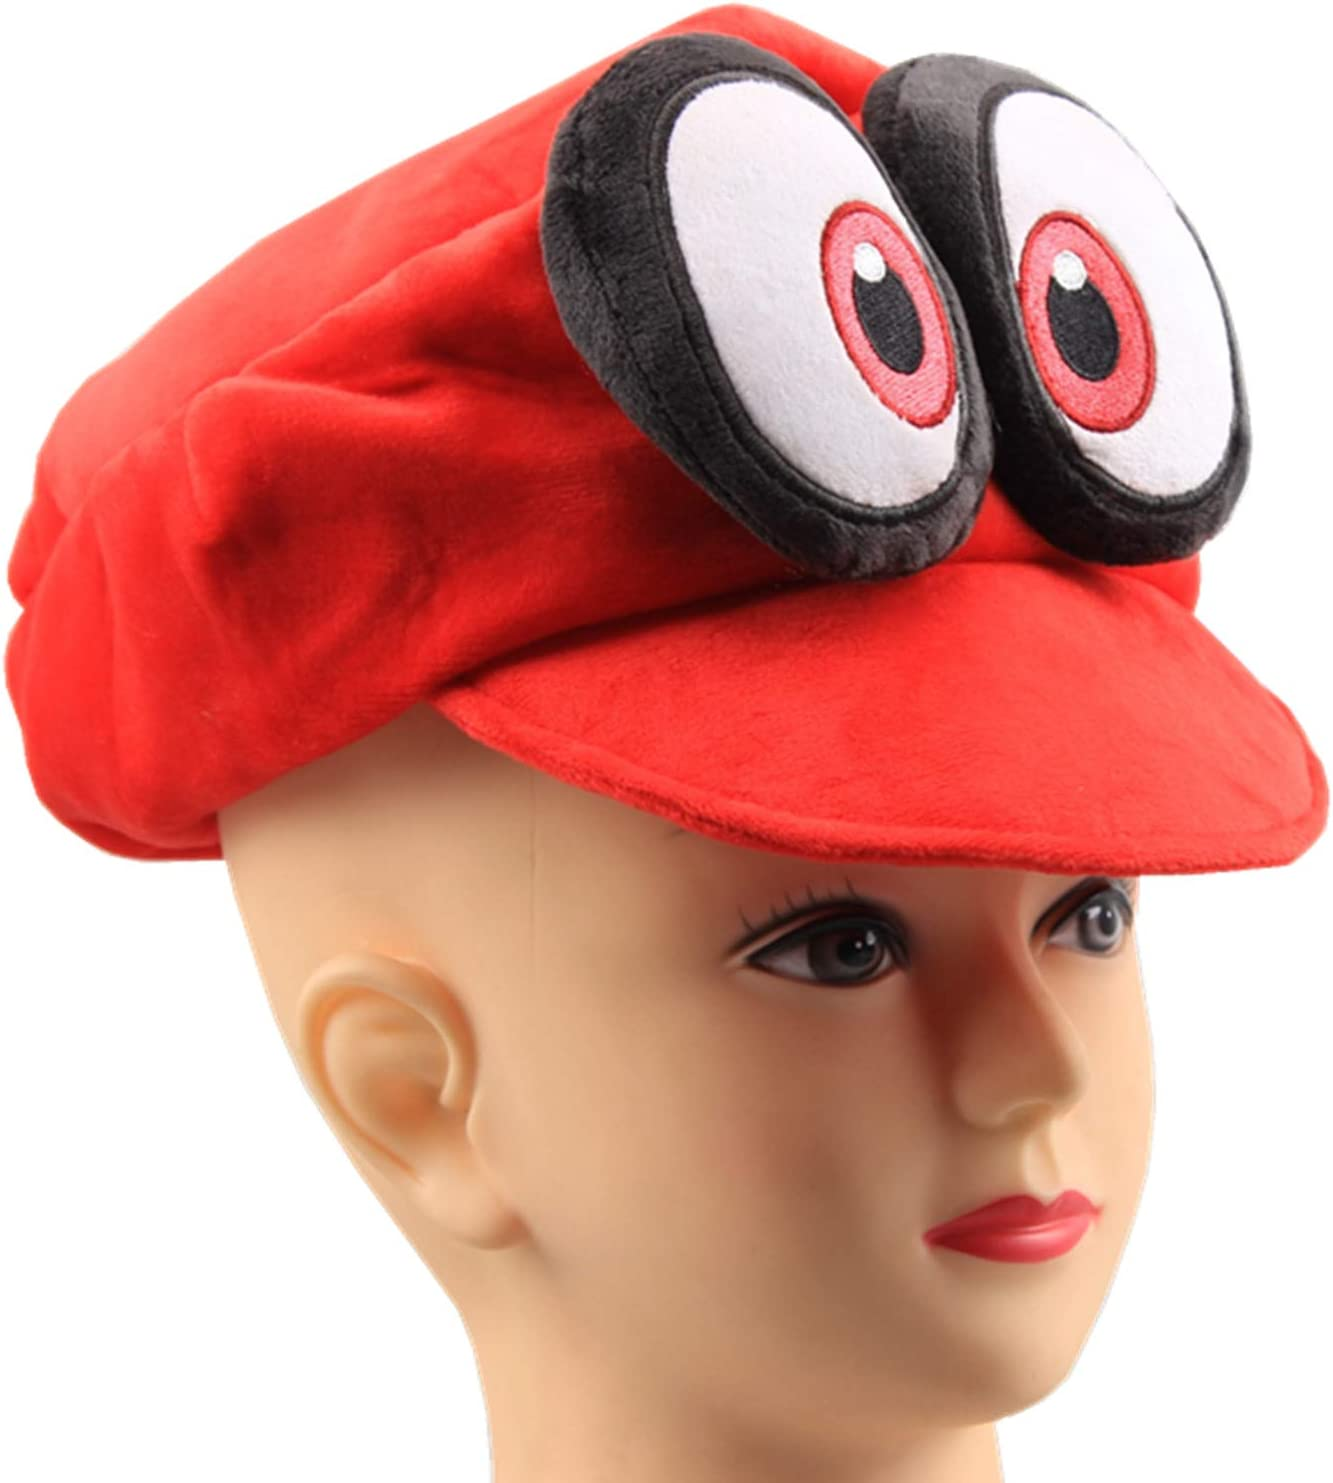 Amazon Com Uiuoutoy Super Mario Odyssey Cappy Hat Cosplay Red Plush Toys Games